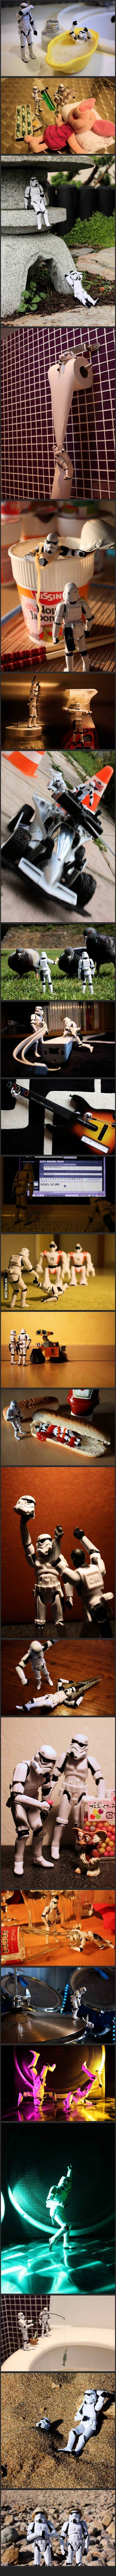 Stormtrooper - Moments of life